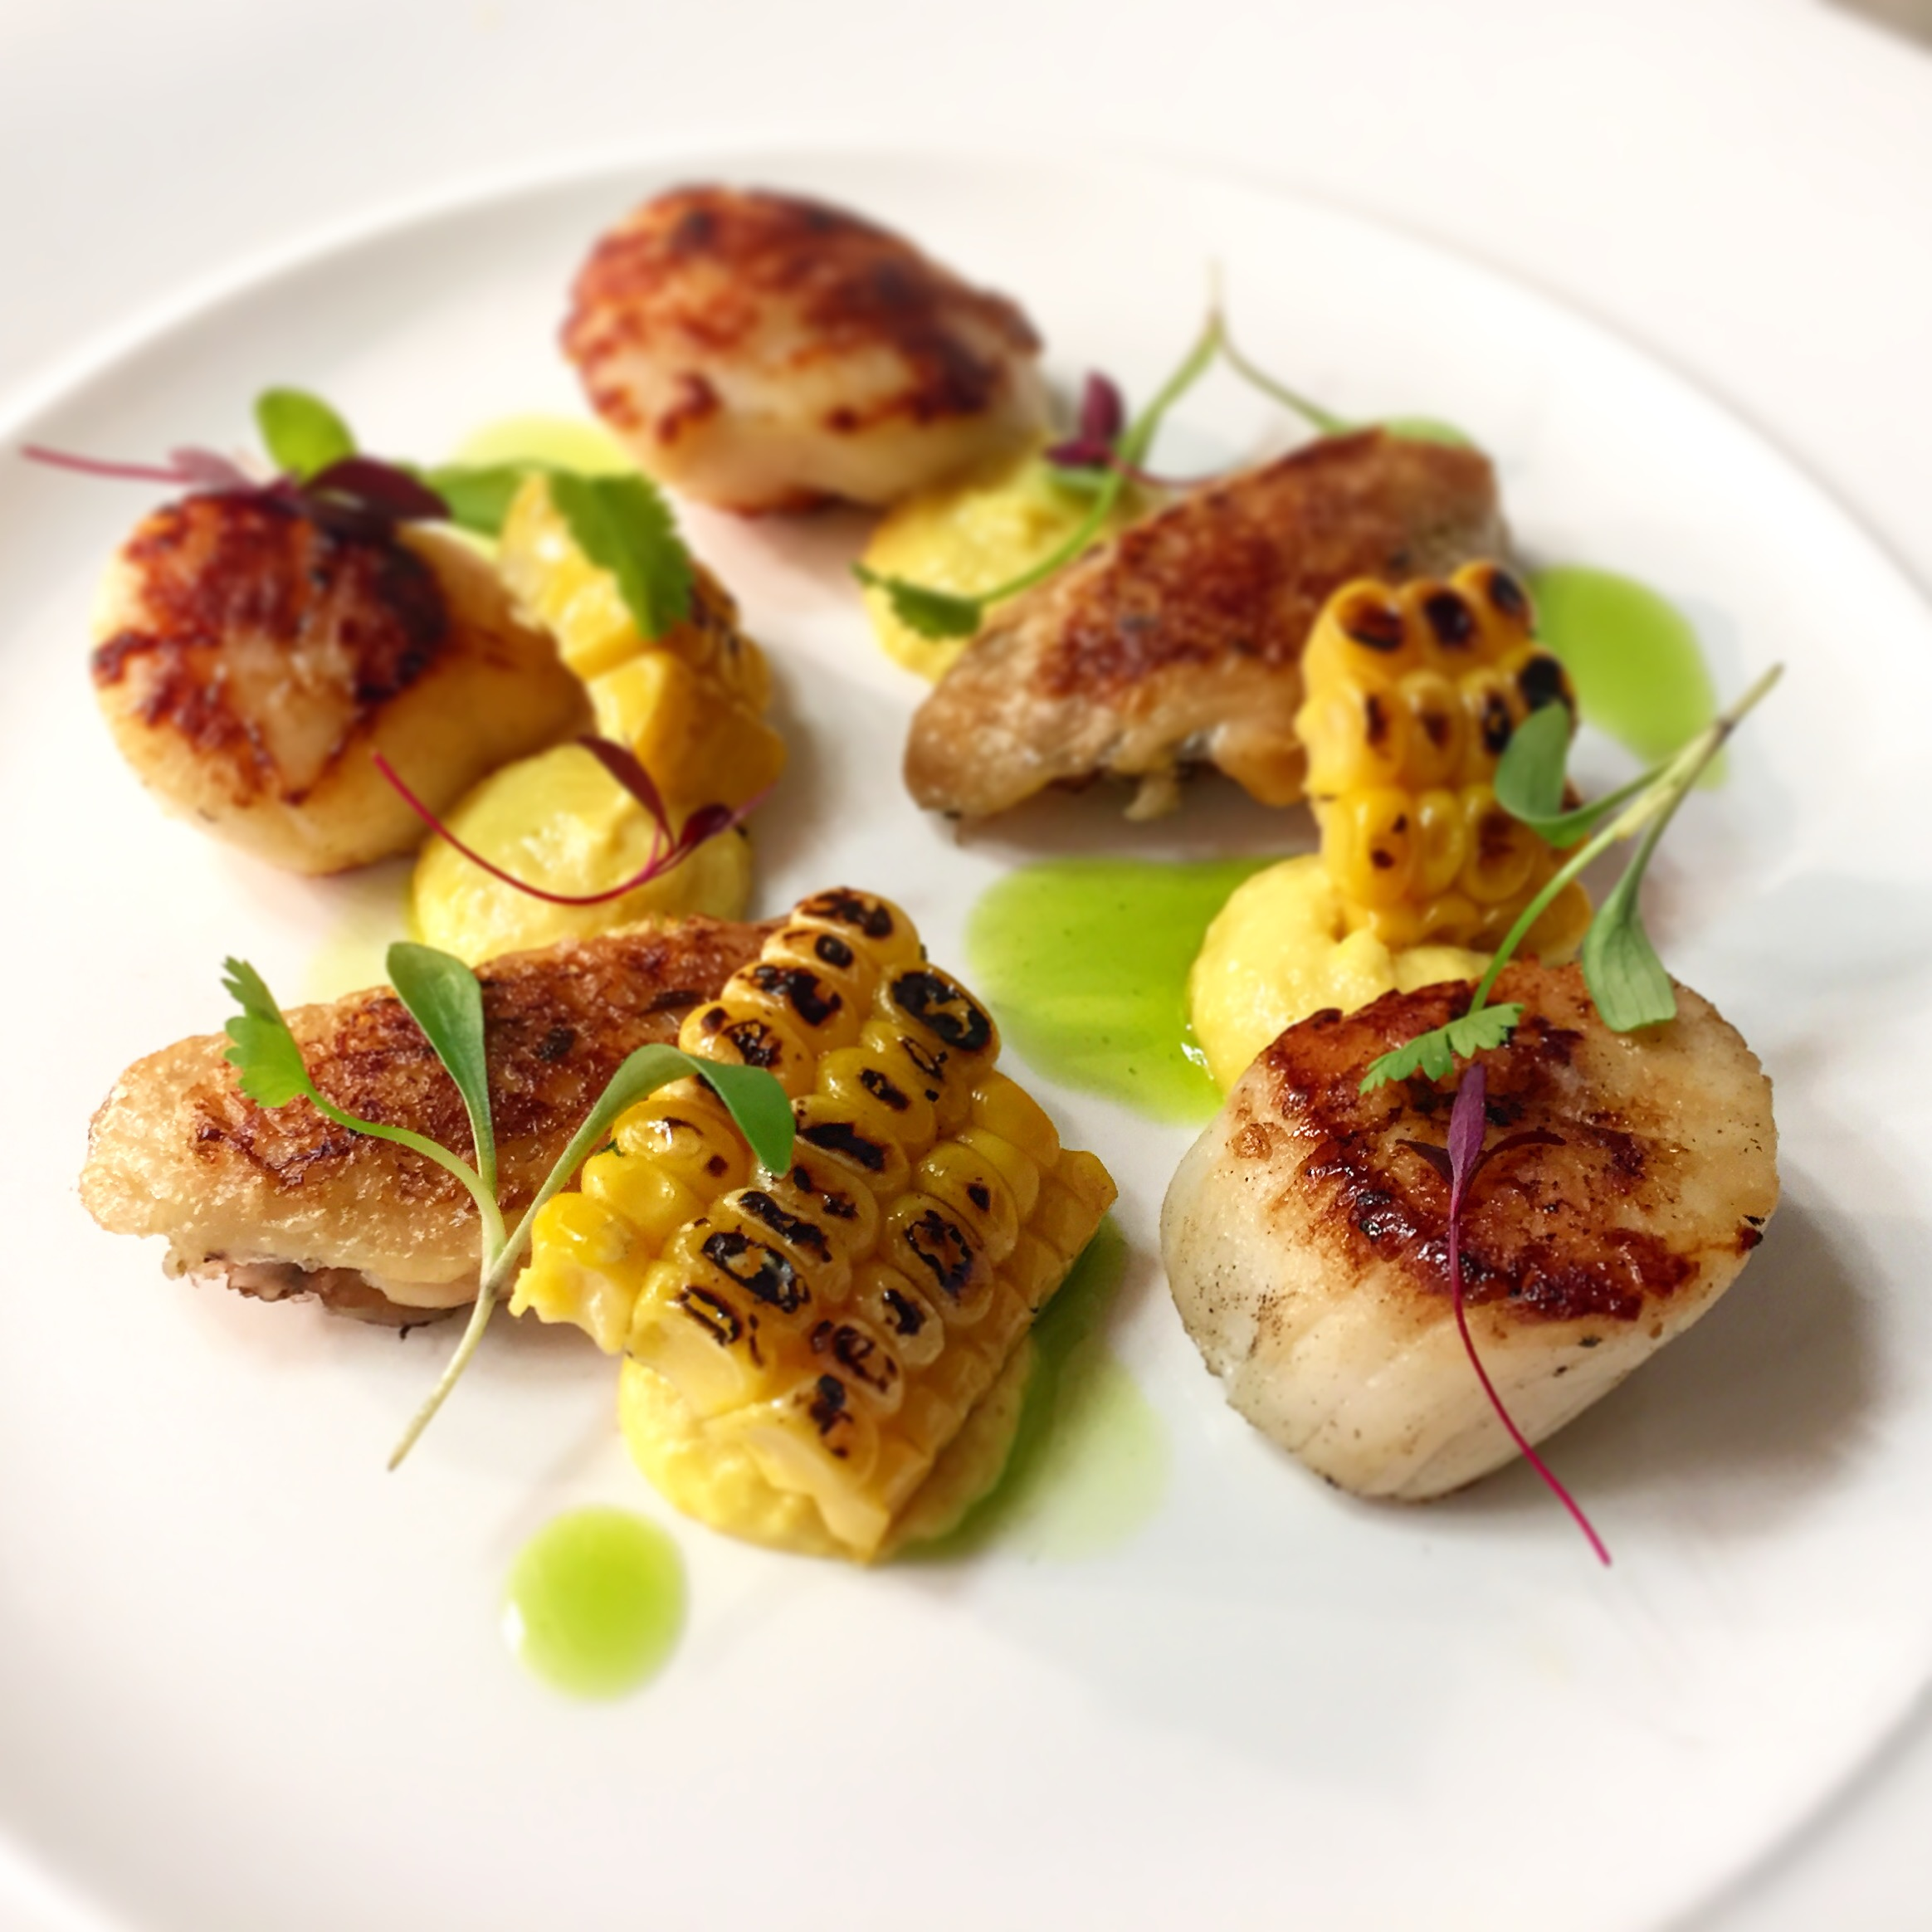 scallops with boneless chicken wings and sweetcorn